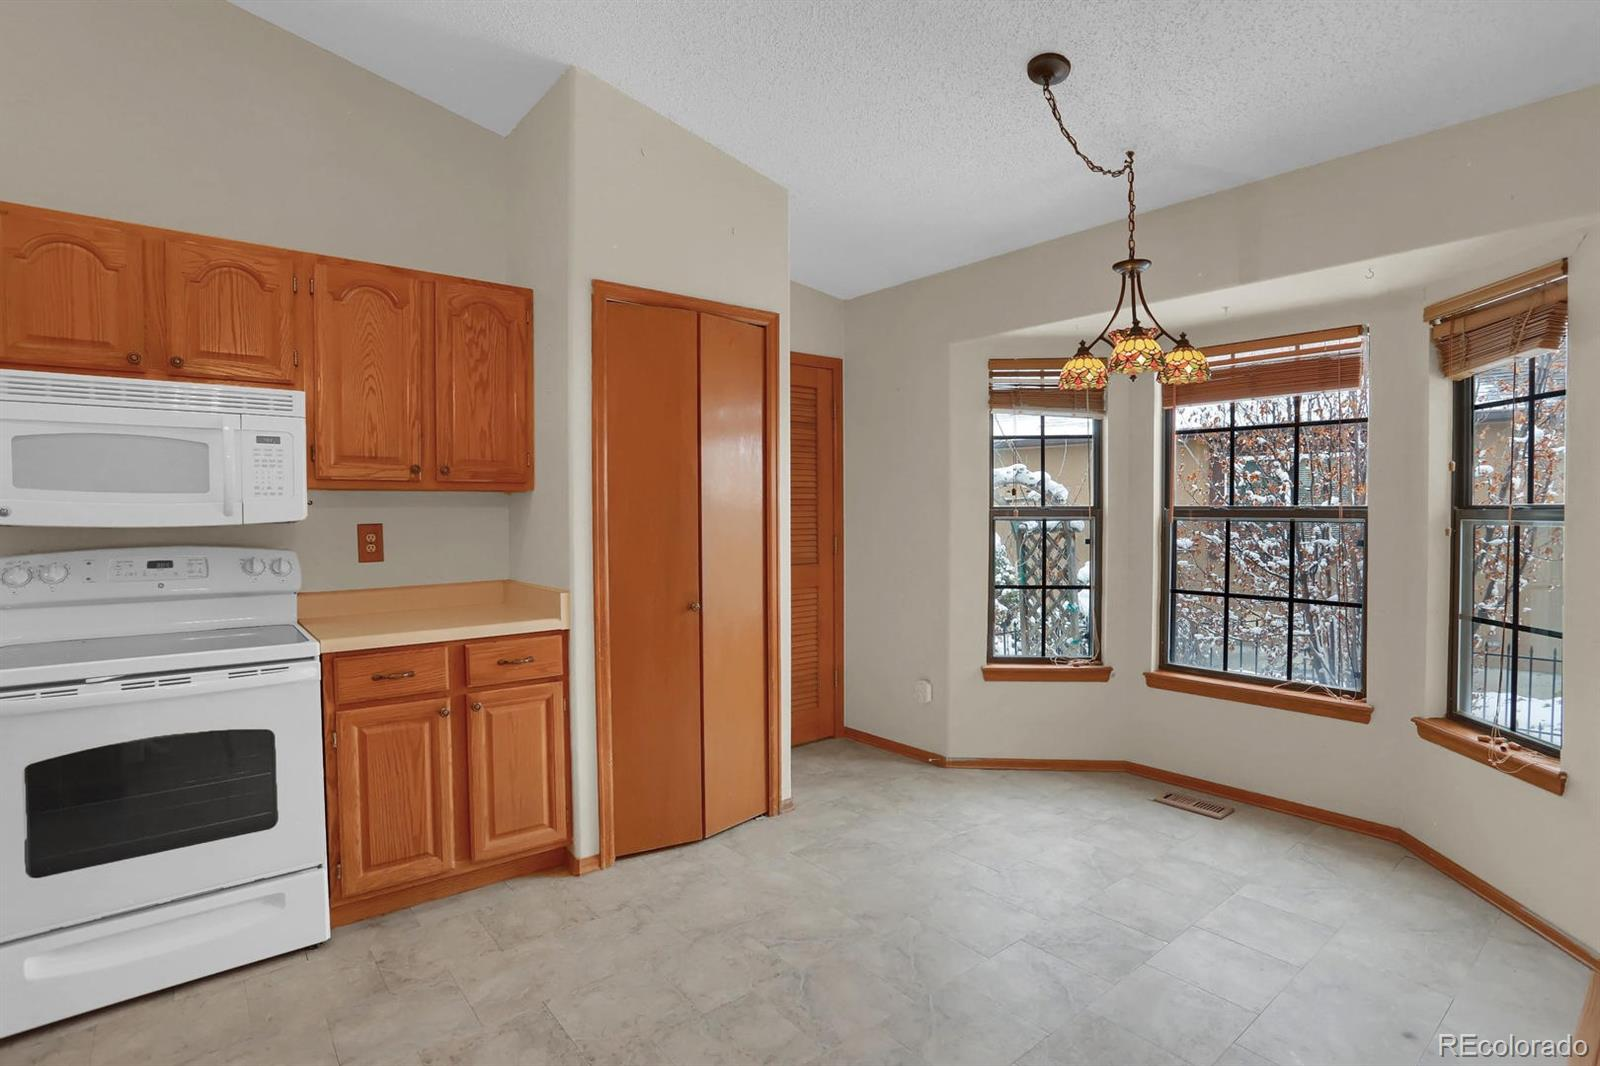 MLS# 9468423 - 6 - 4870 Purcell Drive, Colorado Springs, CO 80922